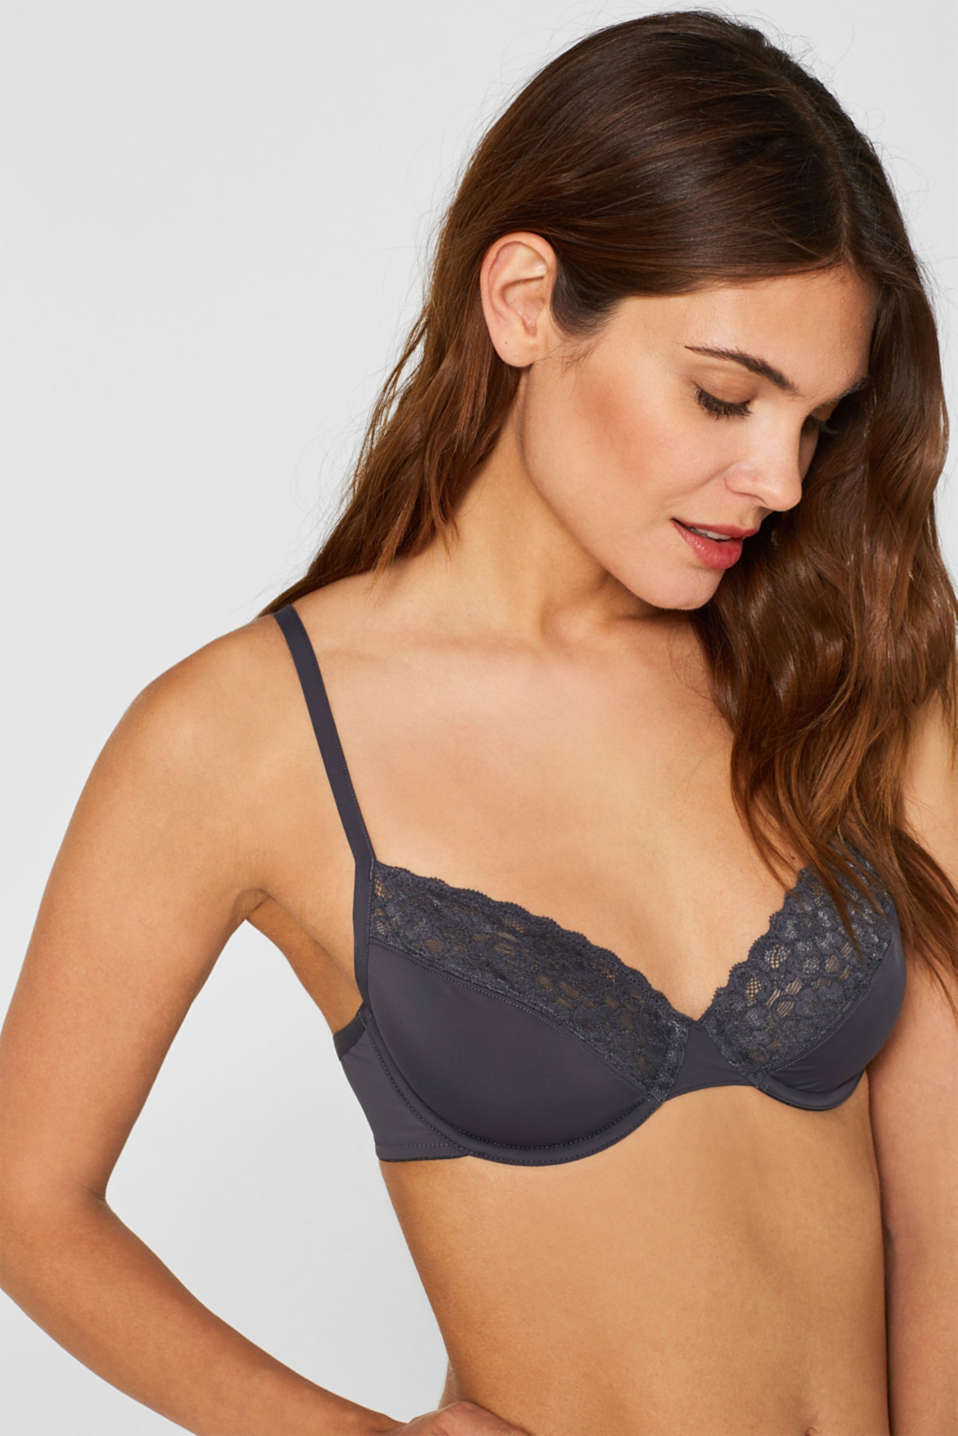 Esprit - Unpadded, underwire bra made of microfibre/lace